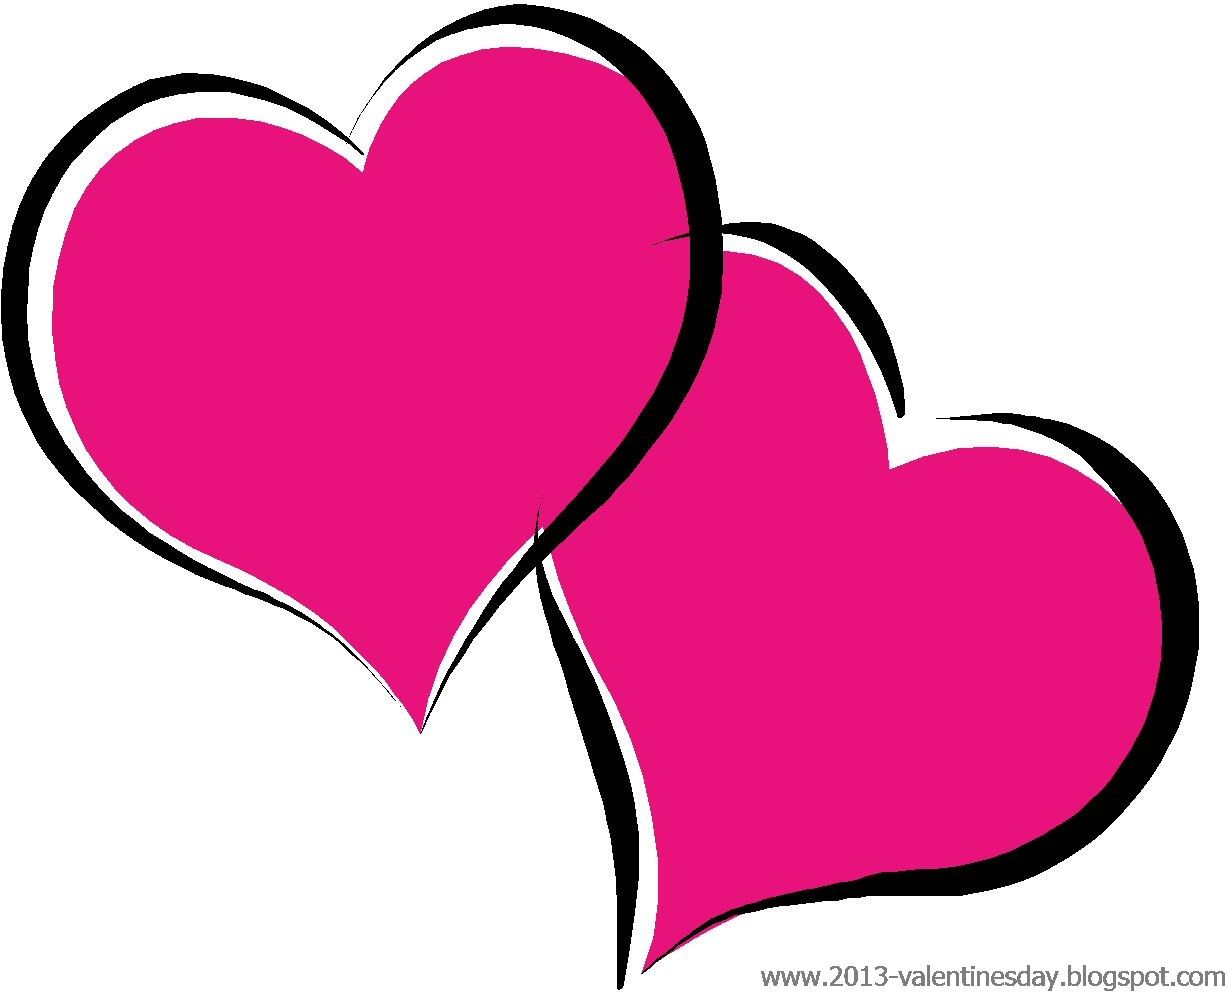 Hearts clipart cute. Black and white valentine